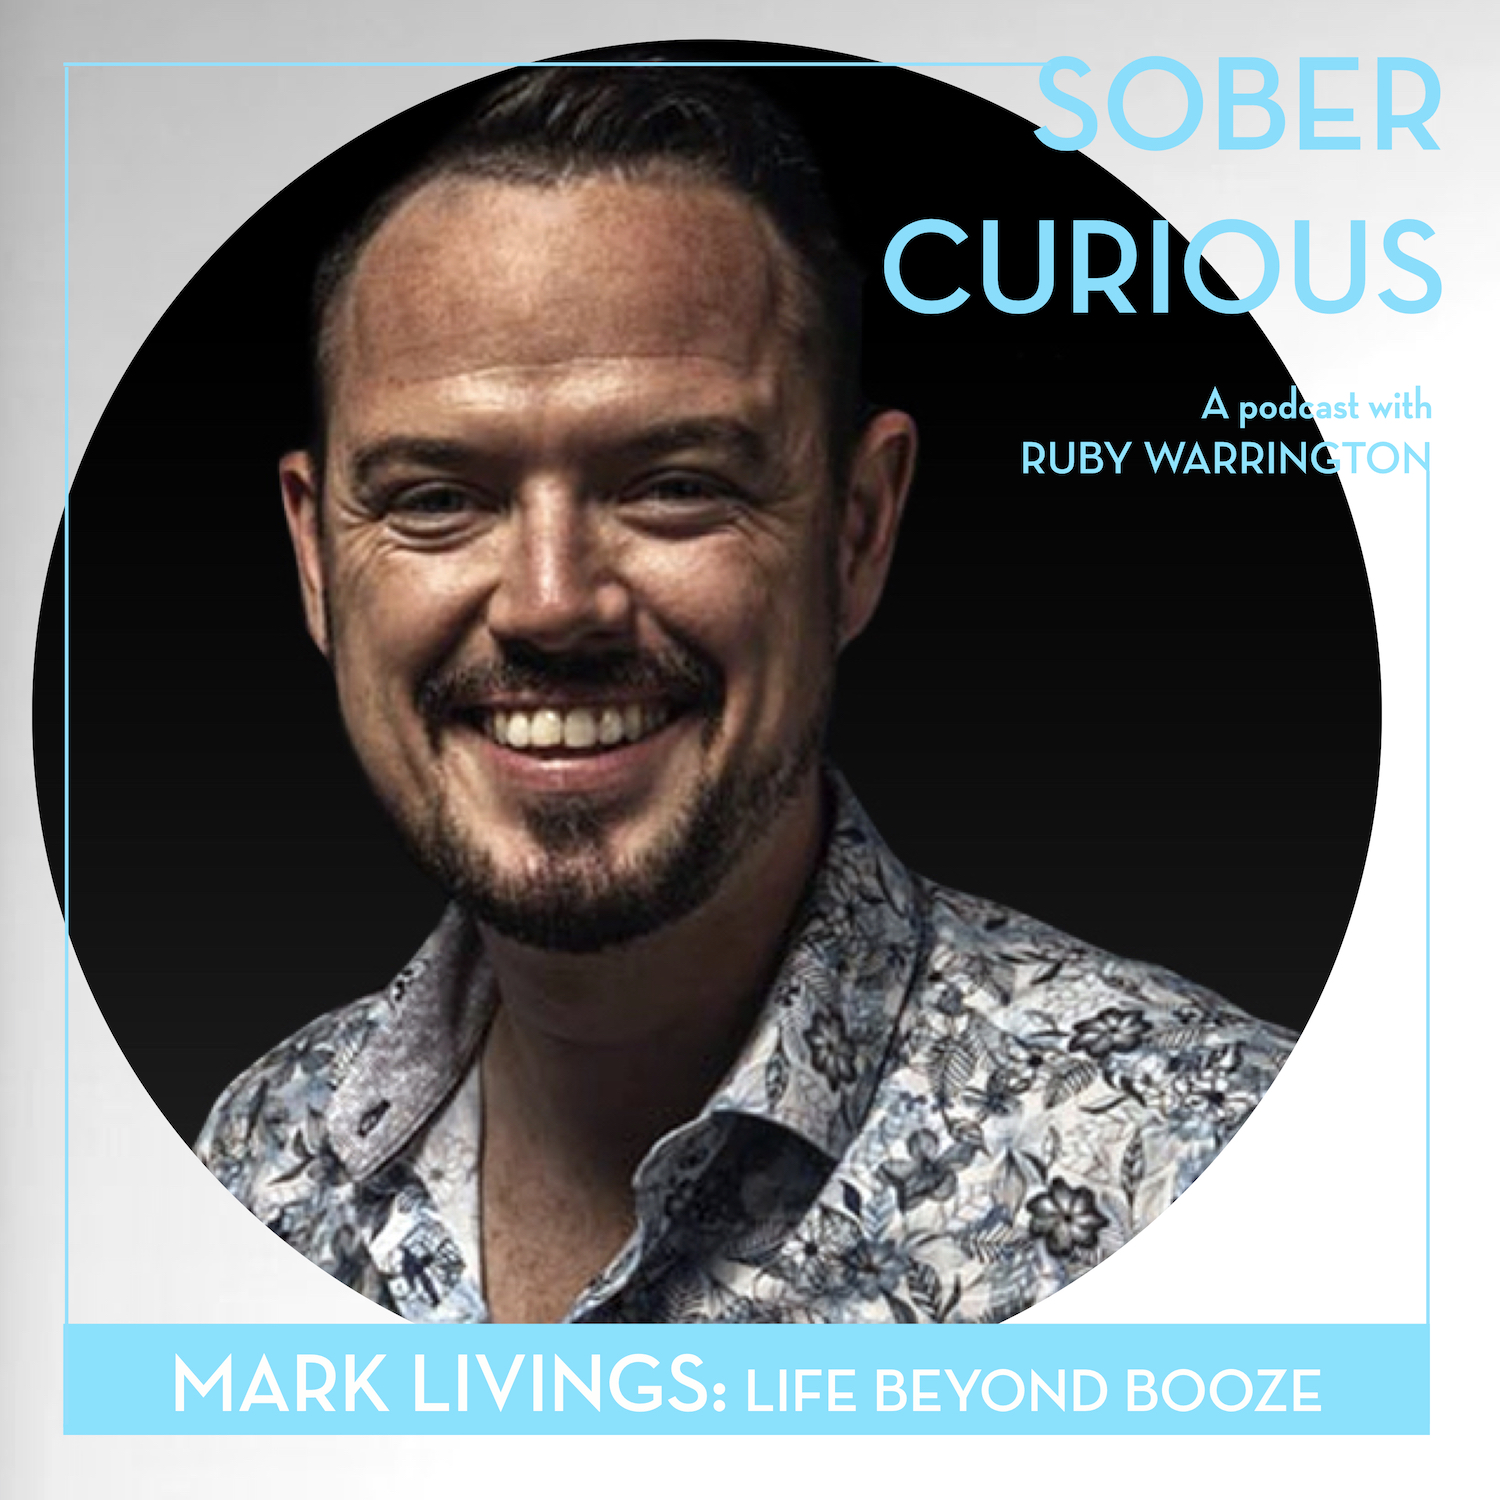 Mark Livings Sober Curious podcast Lyres Ruby Warrington